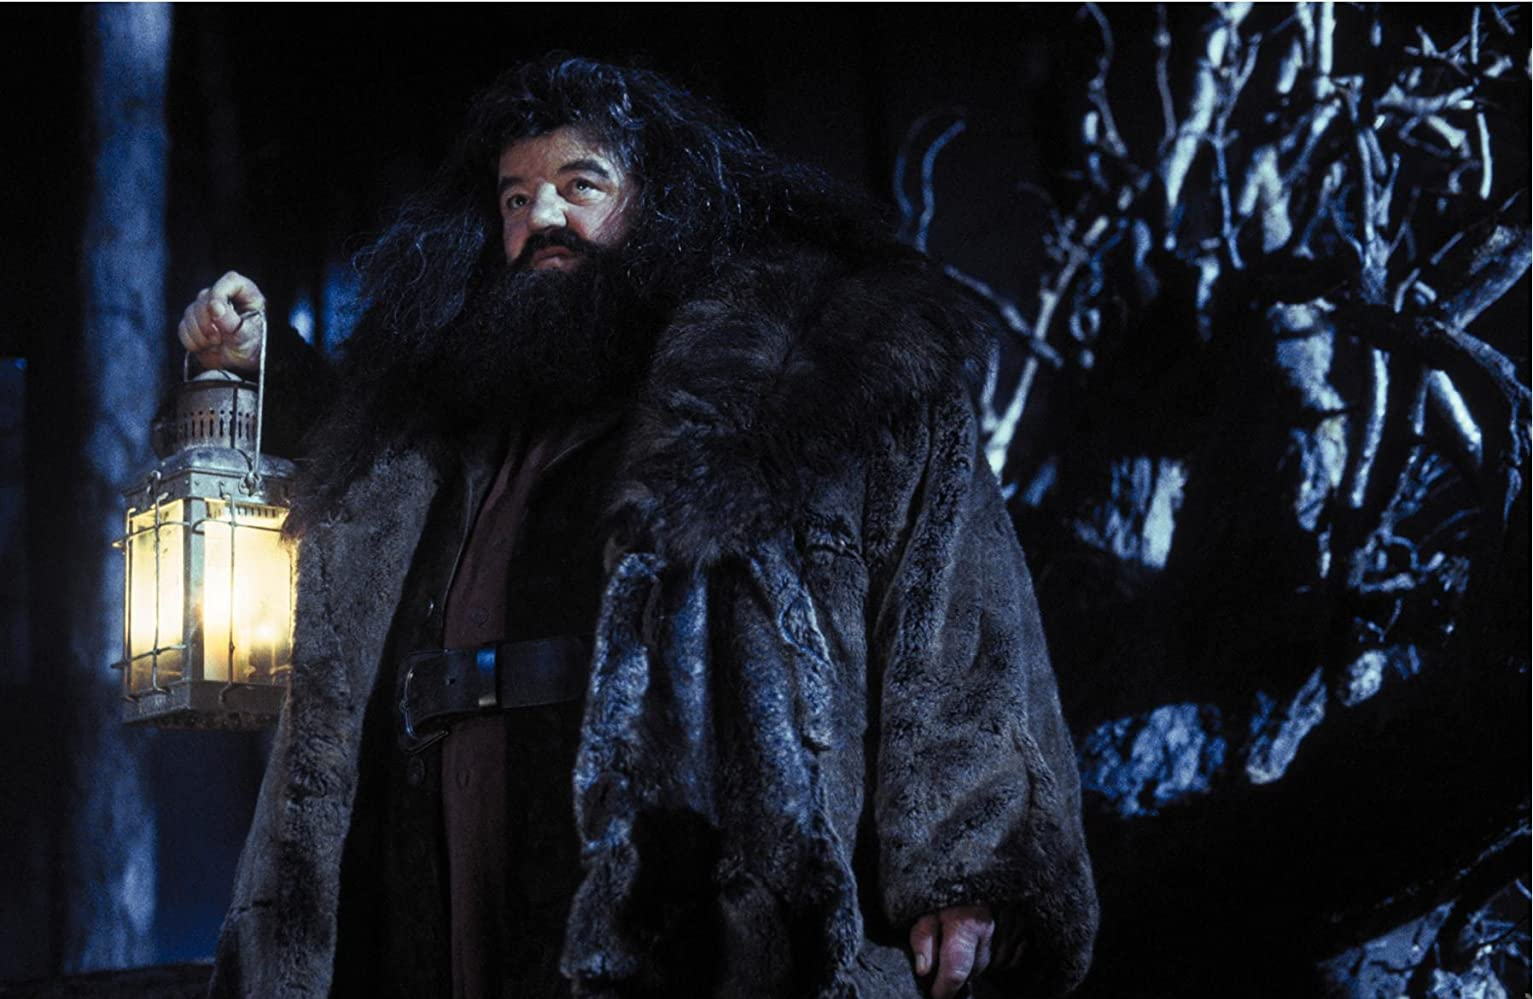 Robbie Coltrane in Harry Potter and the Sorcerer's Stone (2001)